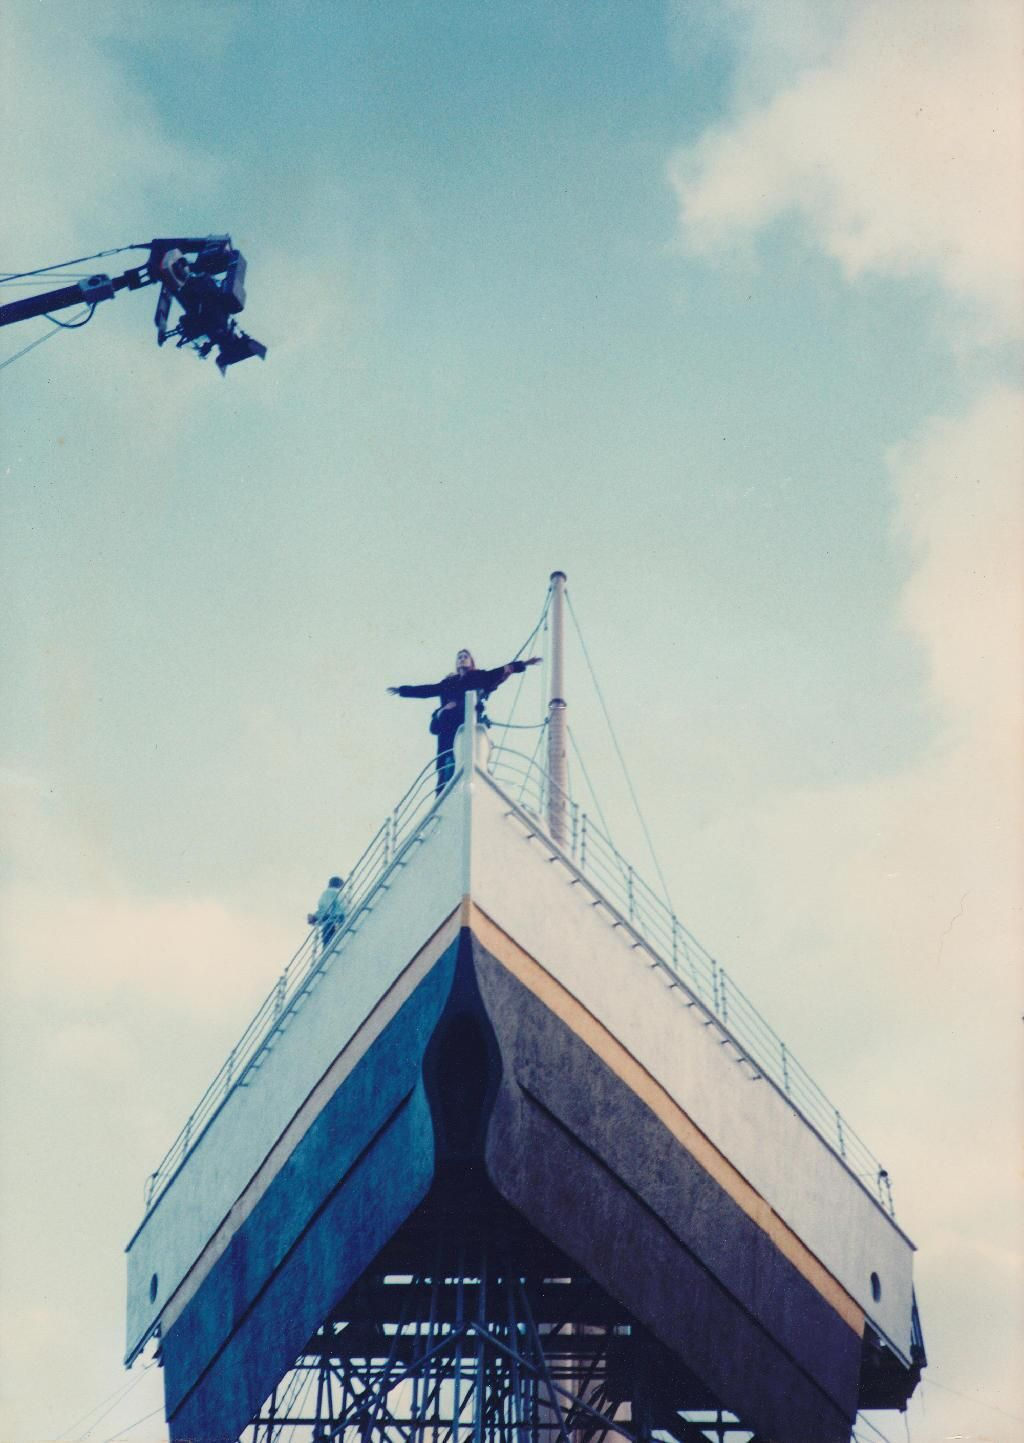 Libro Titanic Behind The Scenes On Libro Titanic Behind The Scenes Titanic